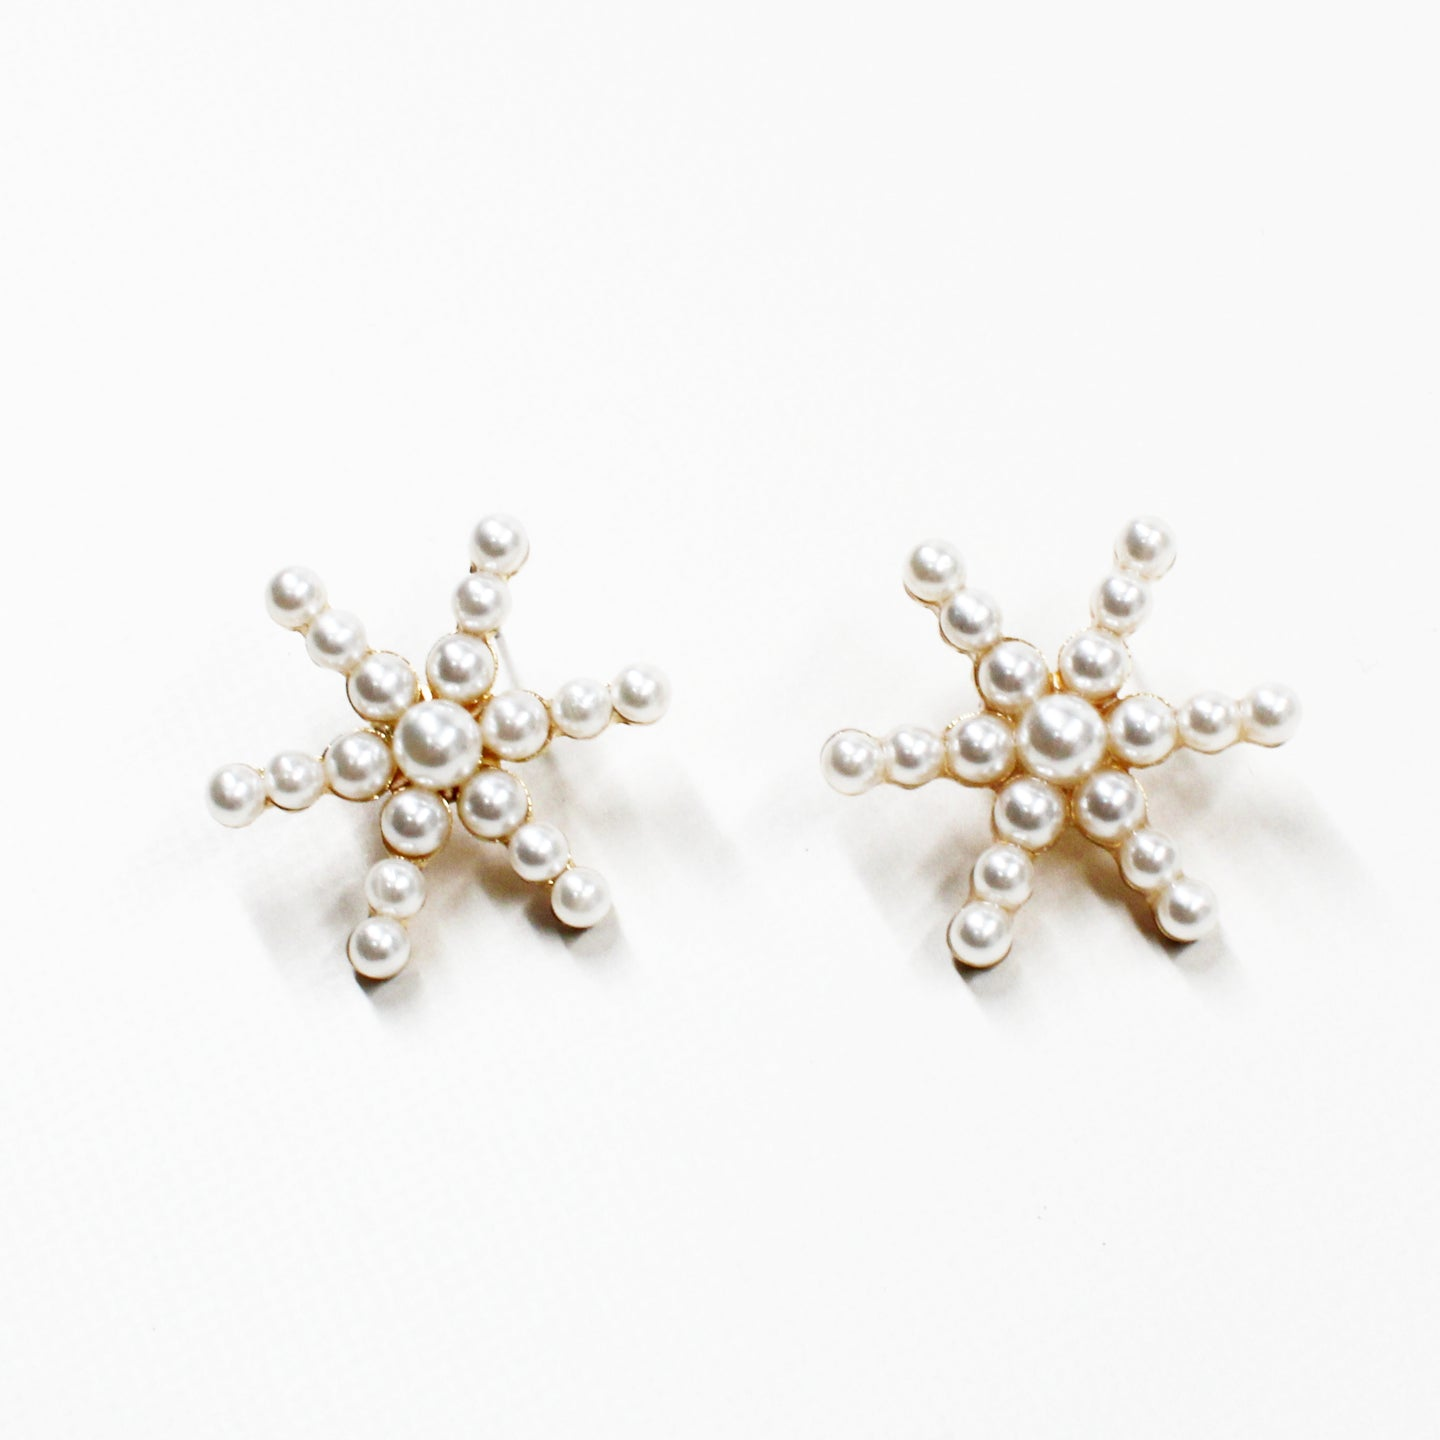 Asterisk Pear Statement Earring